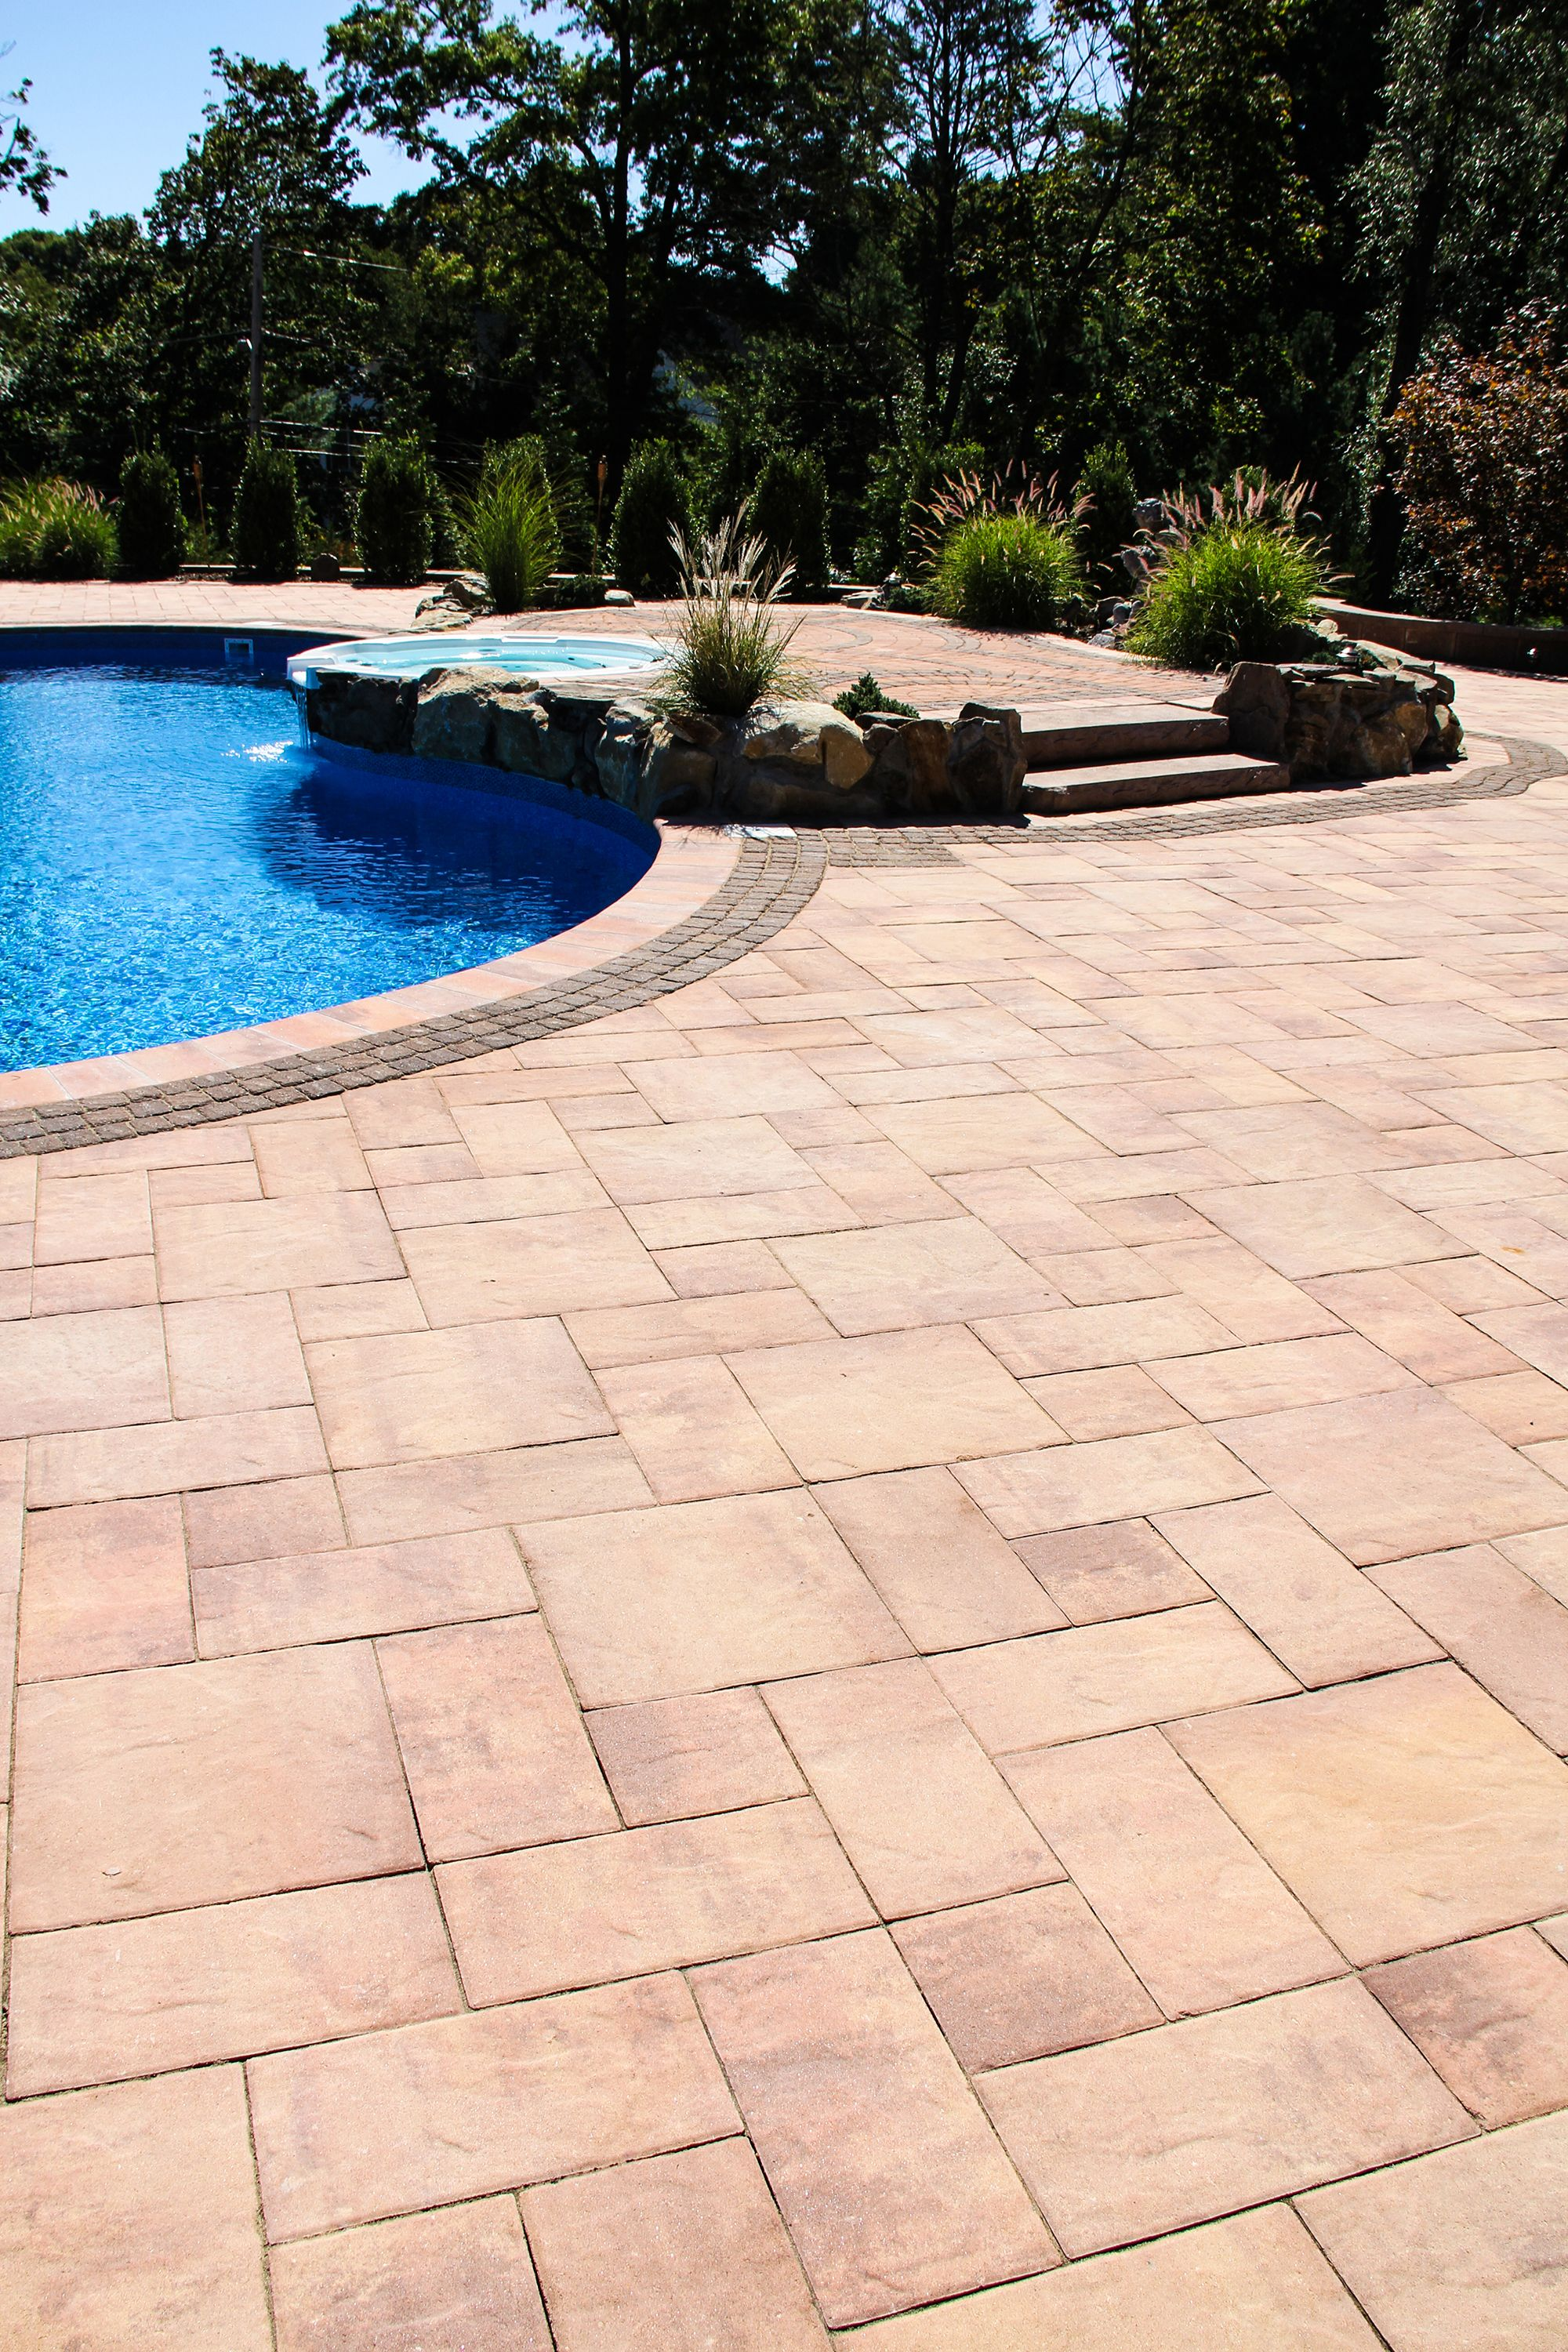 Pool And Hot Tub Surrounded By Our Stone Ridge Xl Collection In Crab Orchard Blend Nicolock Pavers Nicolock Pool Pavers Nicolock Pavers